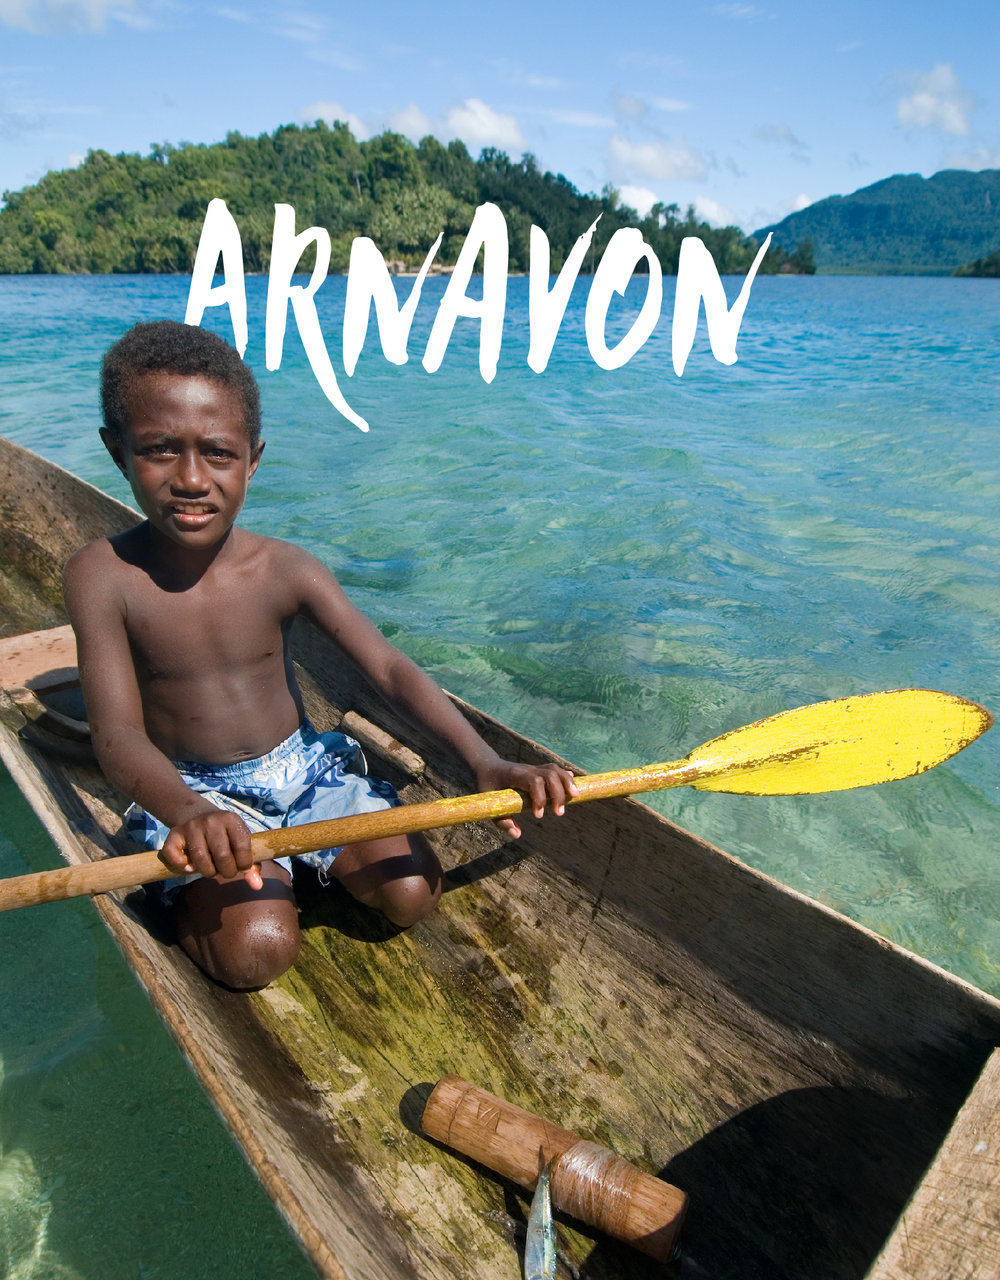 Solomon Islands  9 Day Exploratory Journey | Arnavon  20 Jul - 29 Jul 2019